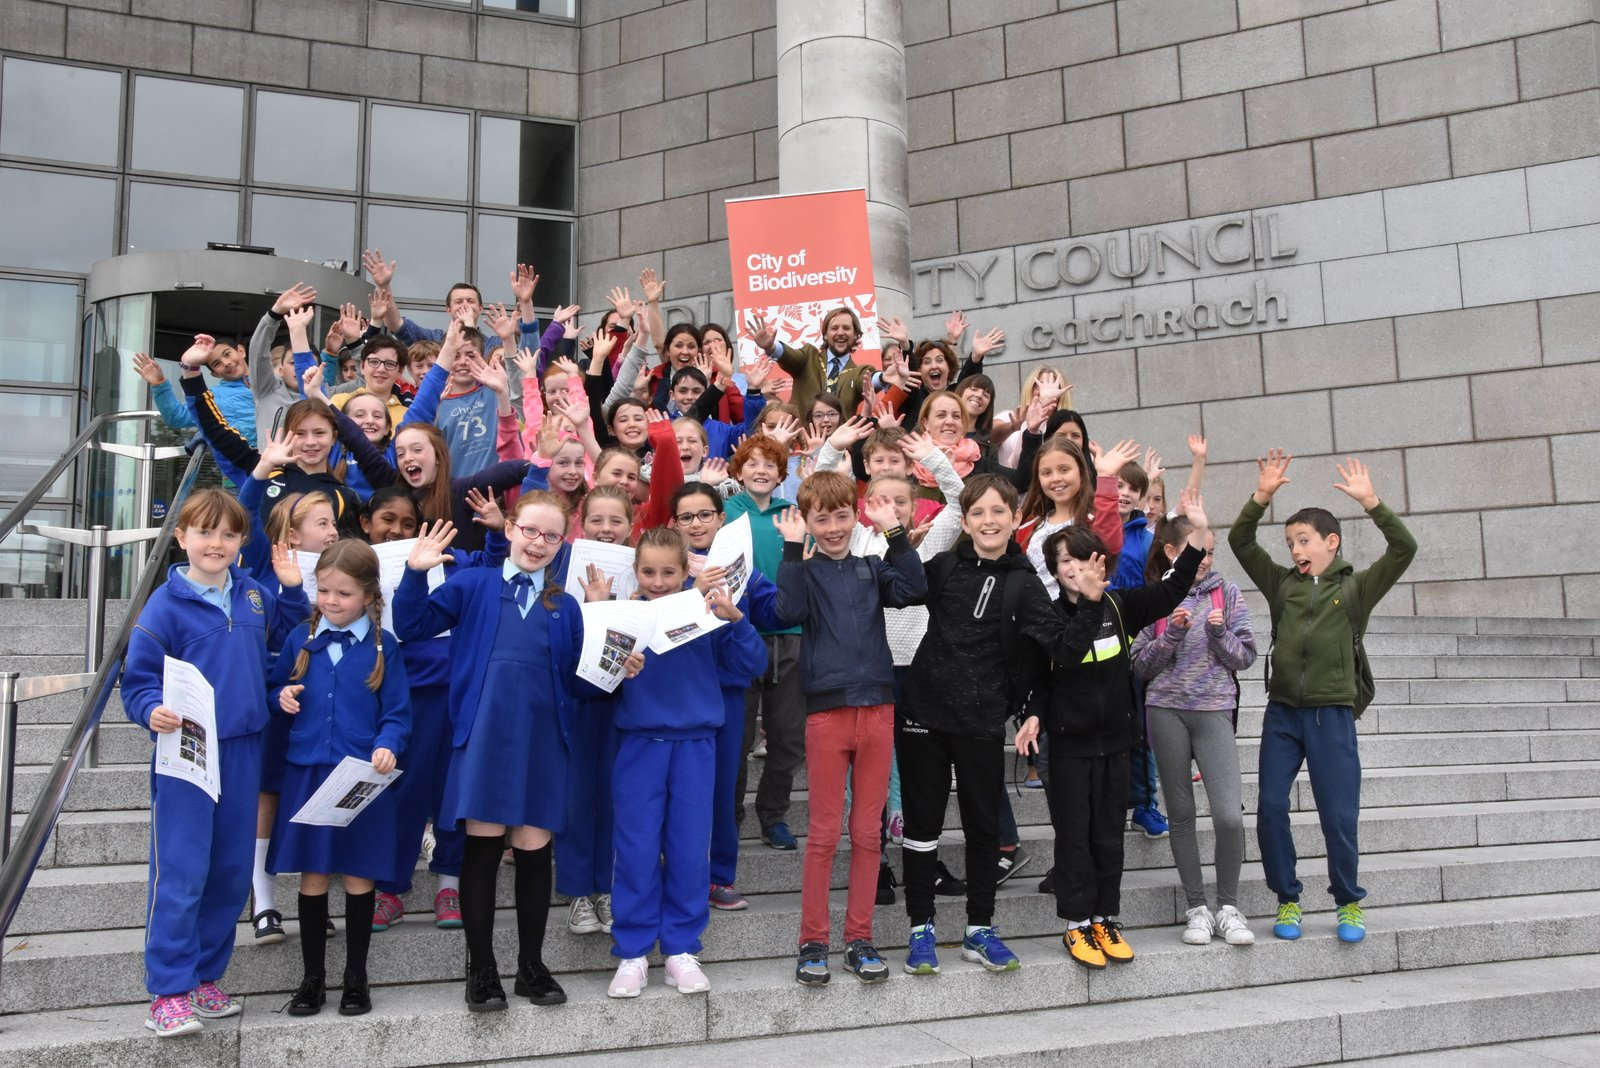 DODDER DEFENDERS - SCHOOLCHILDREN FROM THE DODDER CATCHMENT OUTSIDE DUBLIN CITY COUNCIL OFFICES